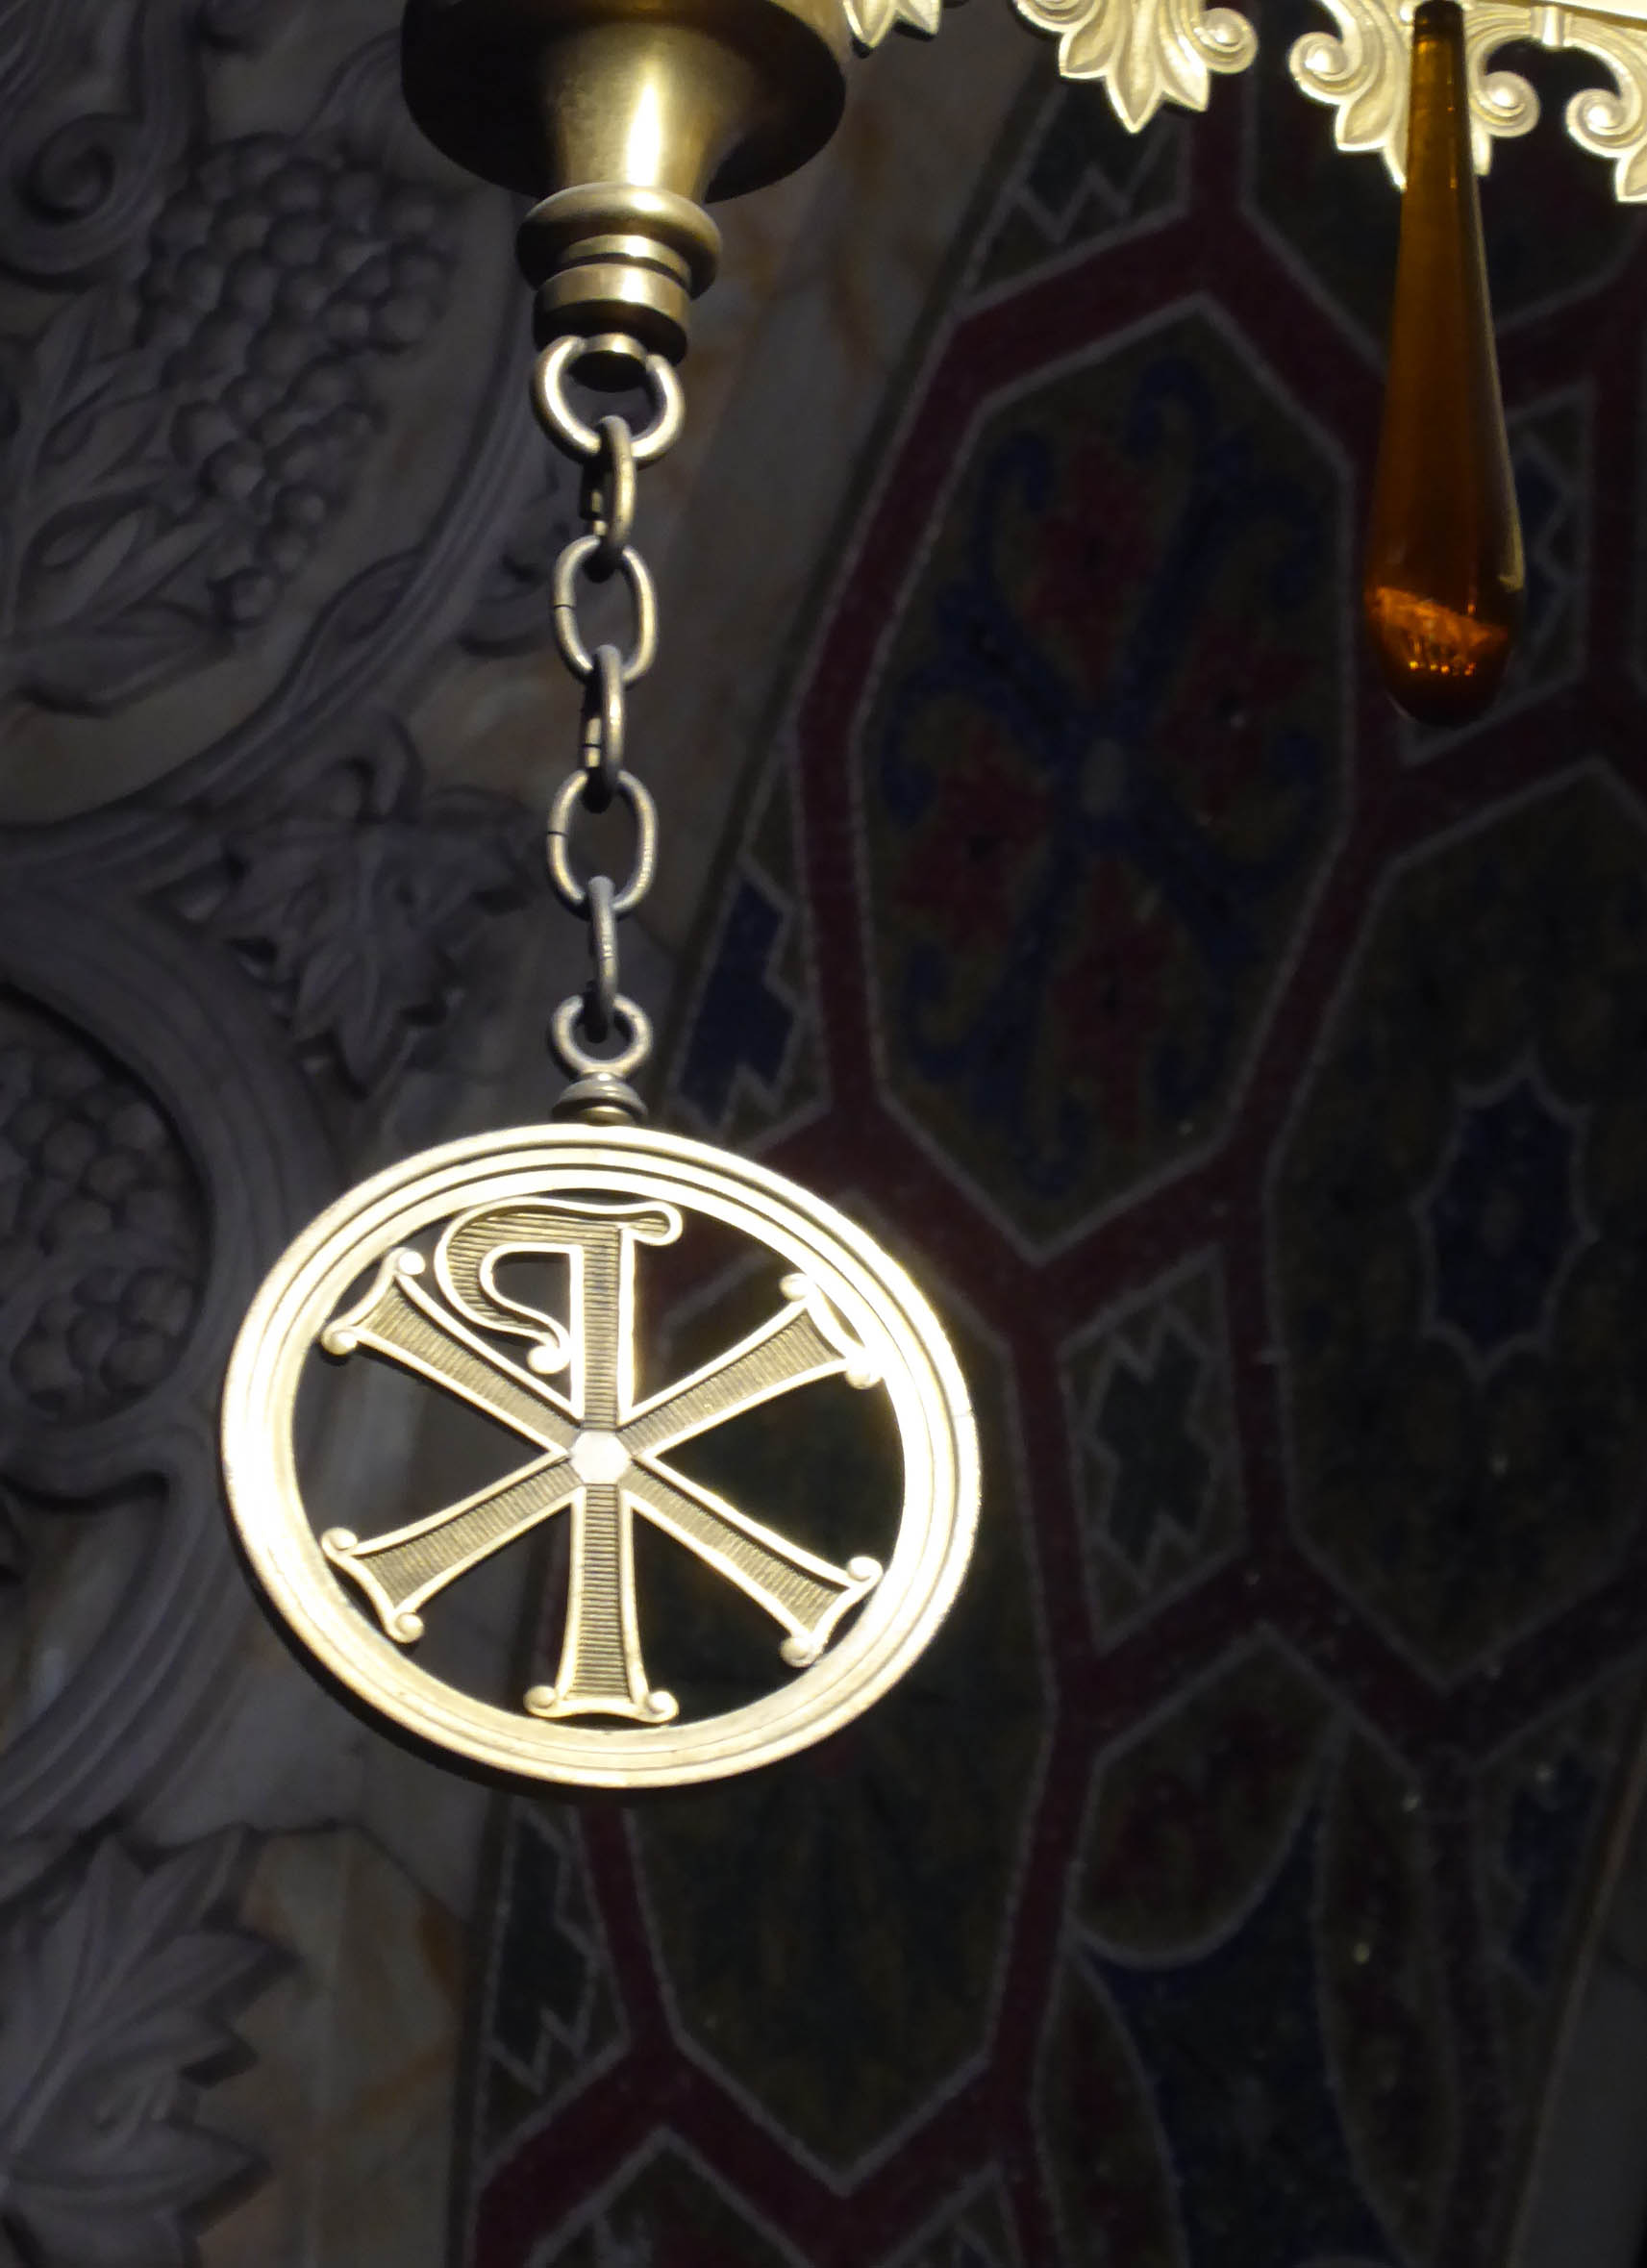 Detail of gold ornament in a cathedral